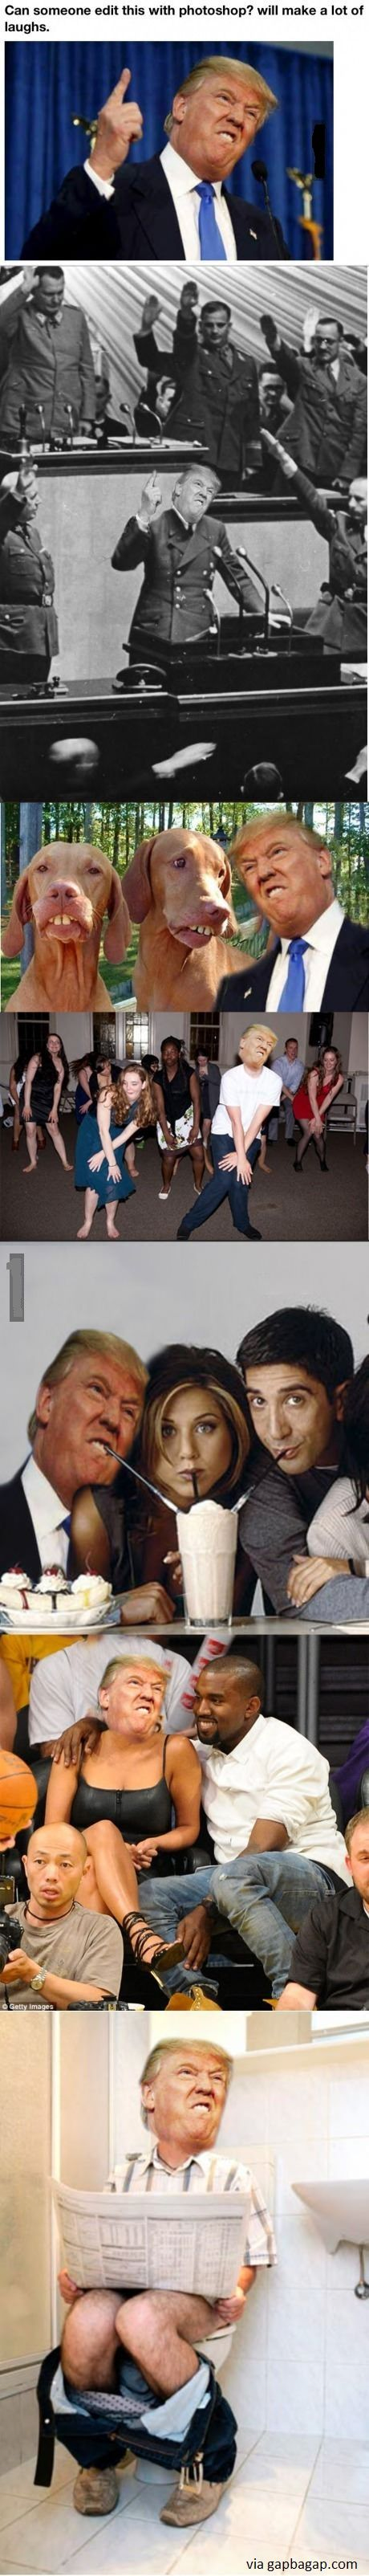 Funny Pictures Of The Year 2017 By Donald Trump